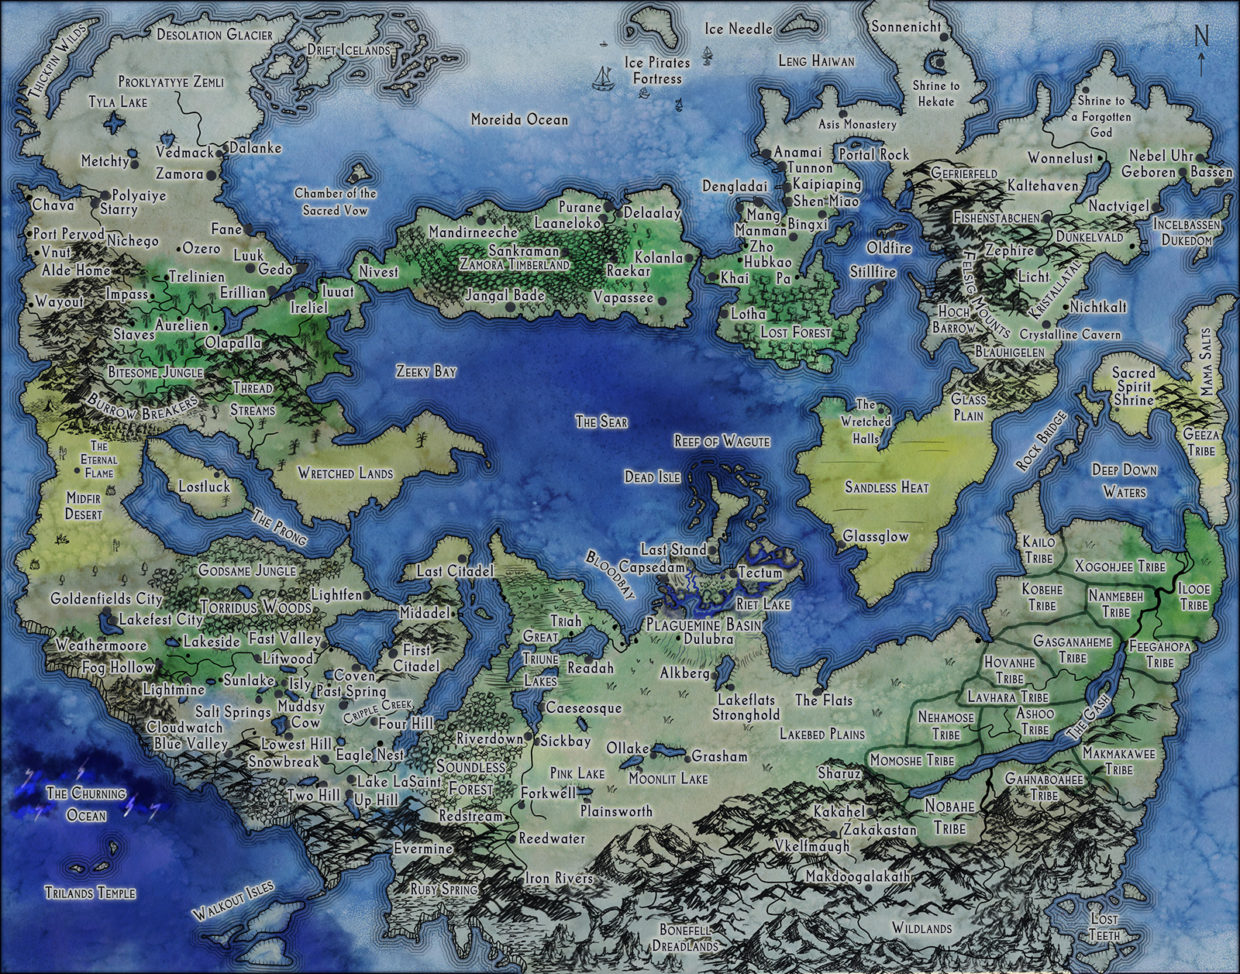 stormtomes large fantasy world map for rpg 5e dungeons and dragons